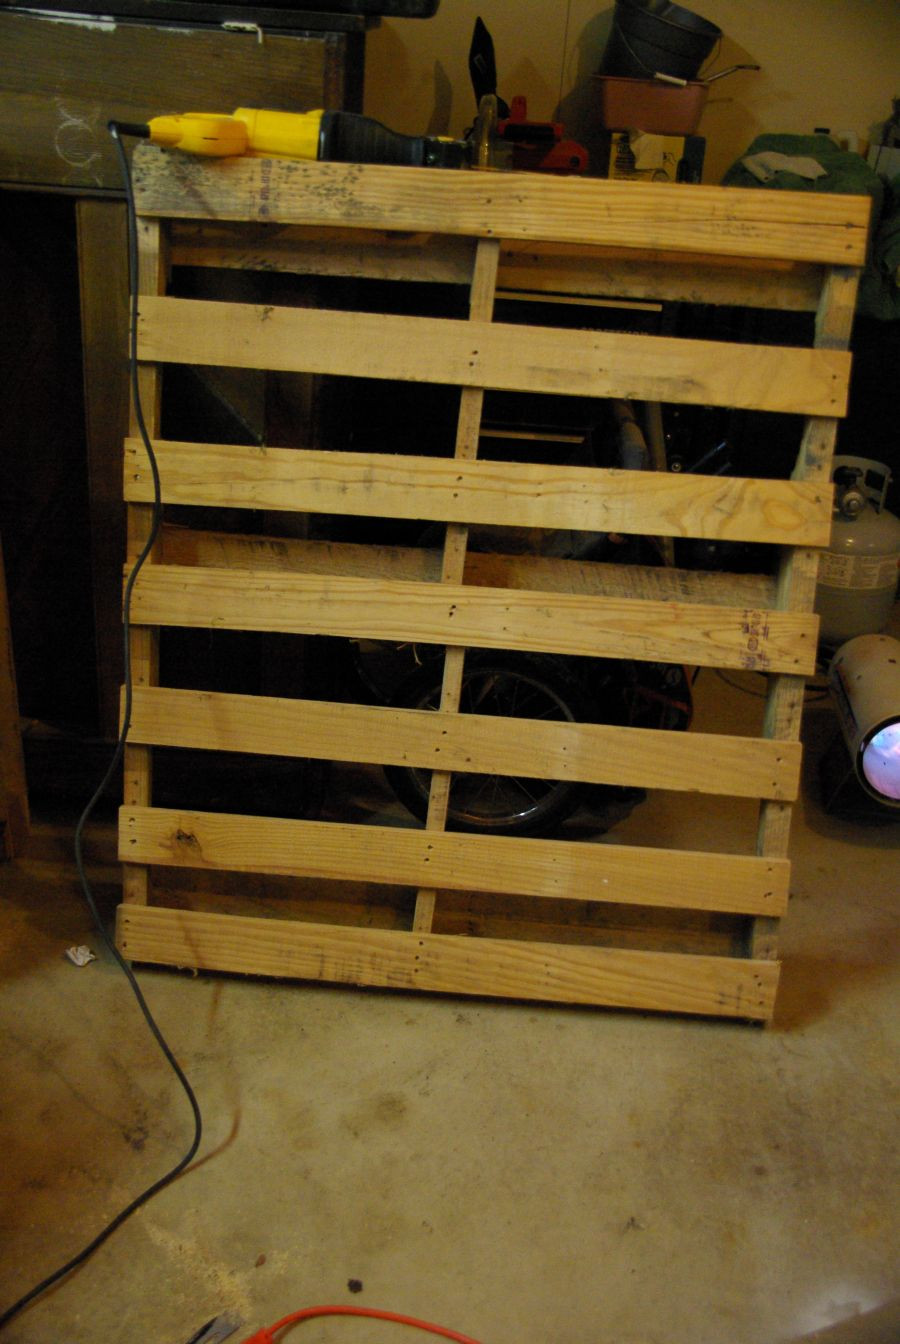 Best ideas about Pallet Wine Rack DIY . Save or Pin DIY Wall Mounted Wine Racks Made Pallets Now.